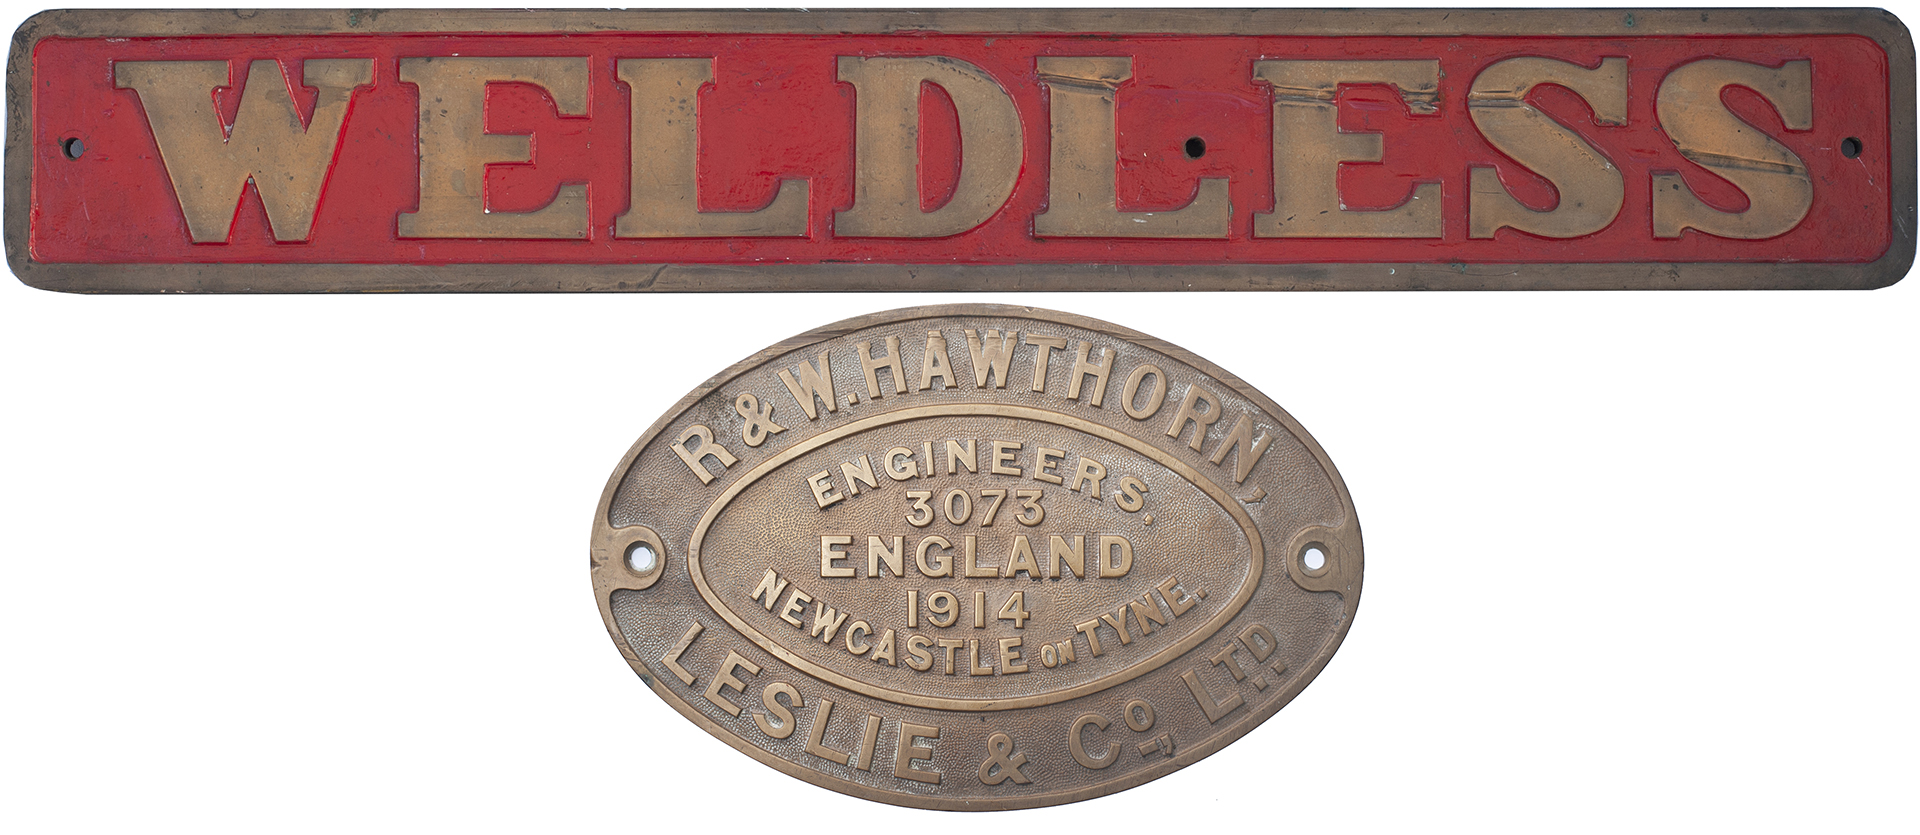 Nameplate WELDLESS together with its worksplate R&W HAWTHORN LESLIE & CO LTD ENGINEERS NEWCASTLE